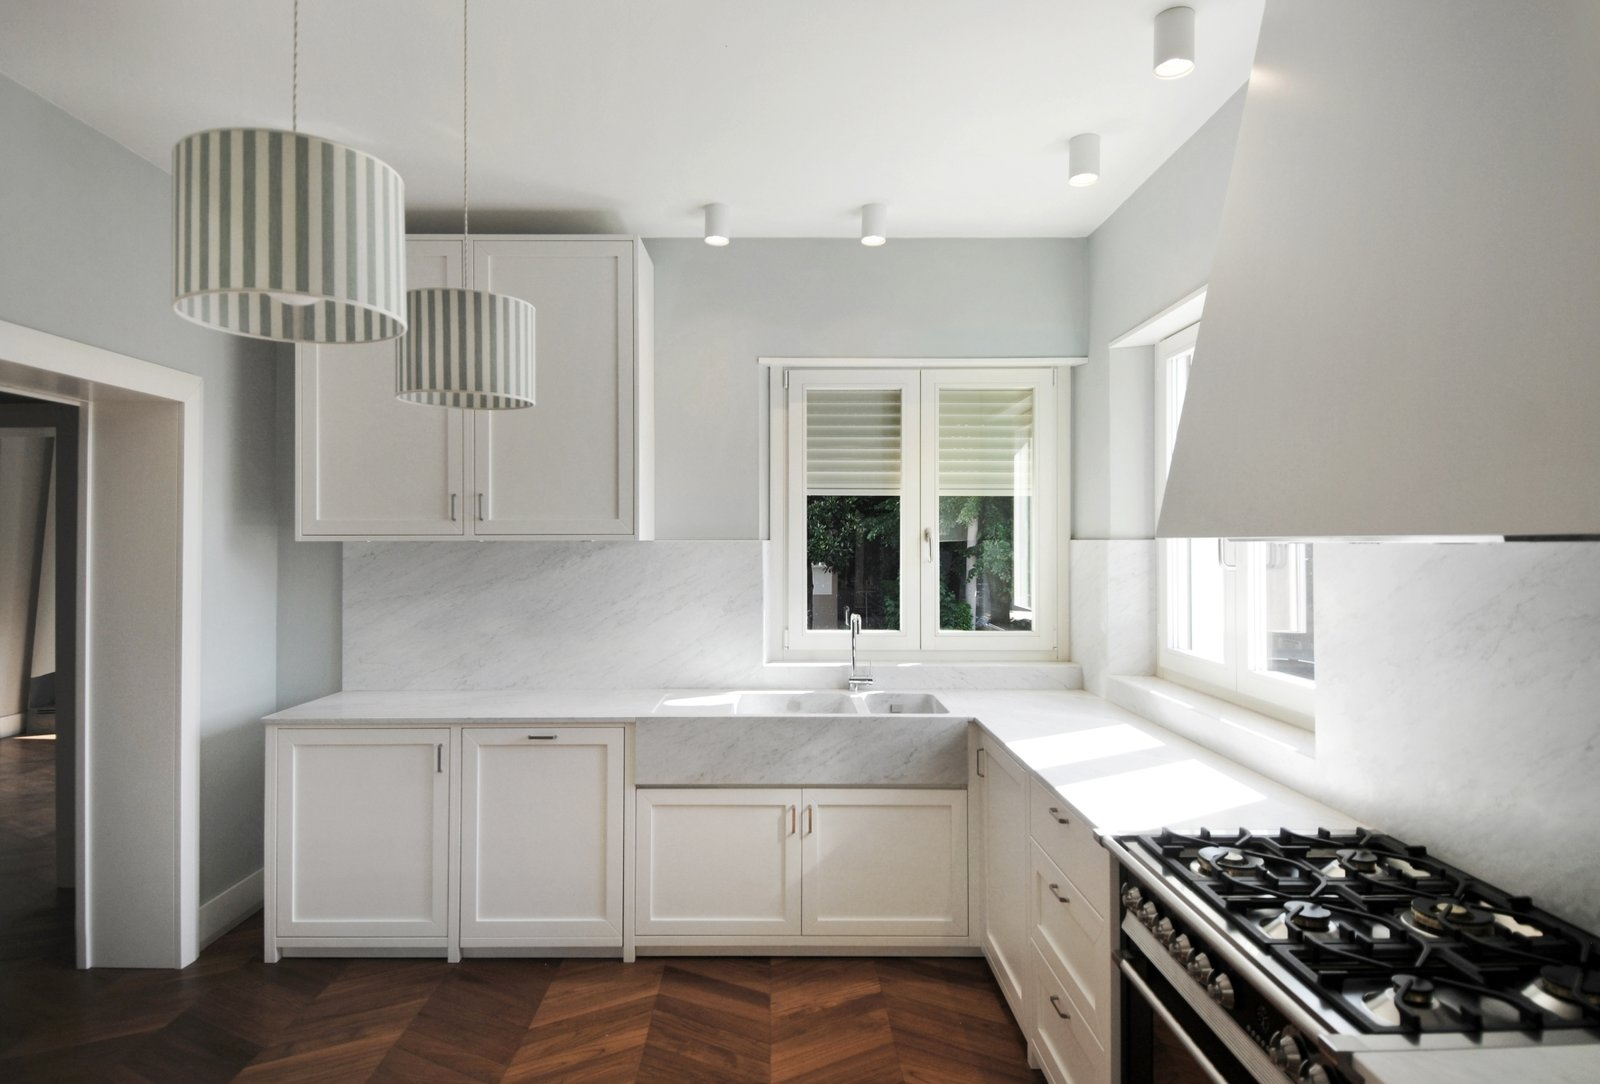 Kitchen, White, Medium Hardwood, Marble, Marble, Ceiling, Drop In, Dishwasher, and Refrigerator buda_kitchen  Kitchen Dishwasher Refrigerator Marble Drop In Medium Hardwood Photos from buda